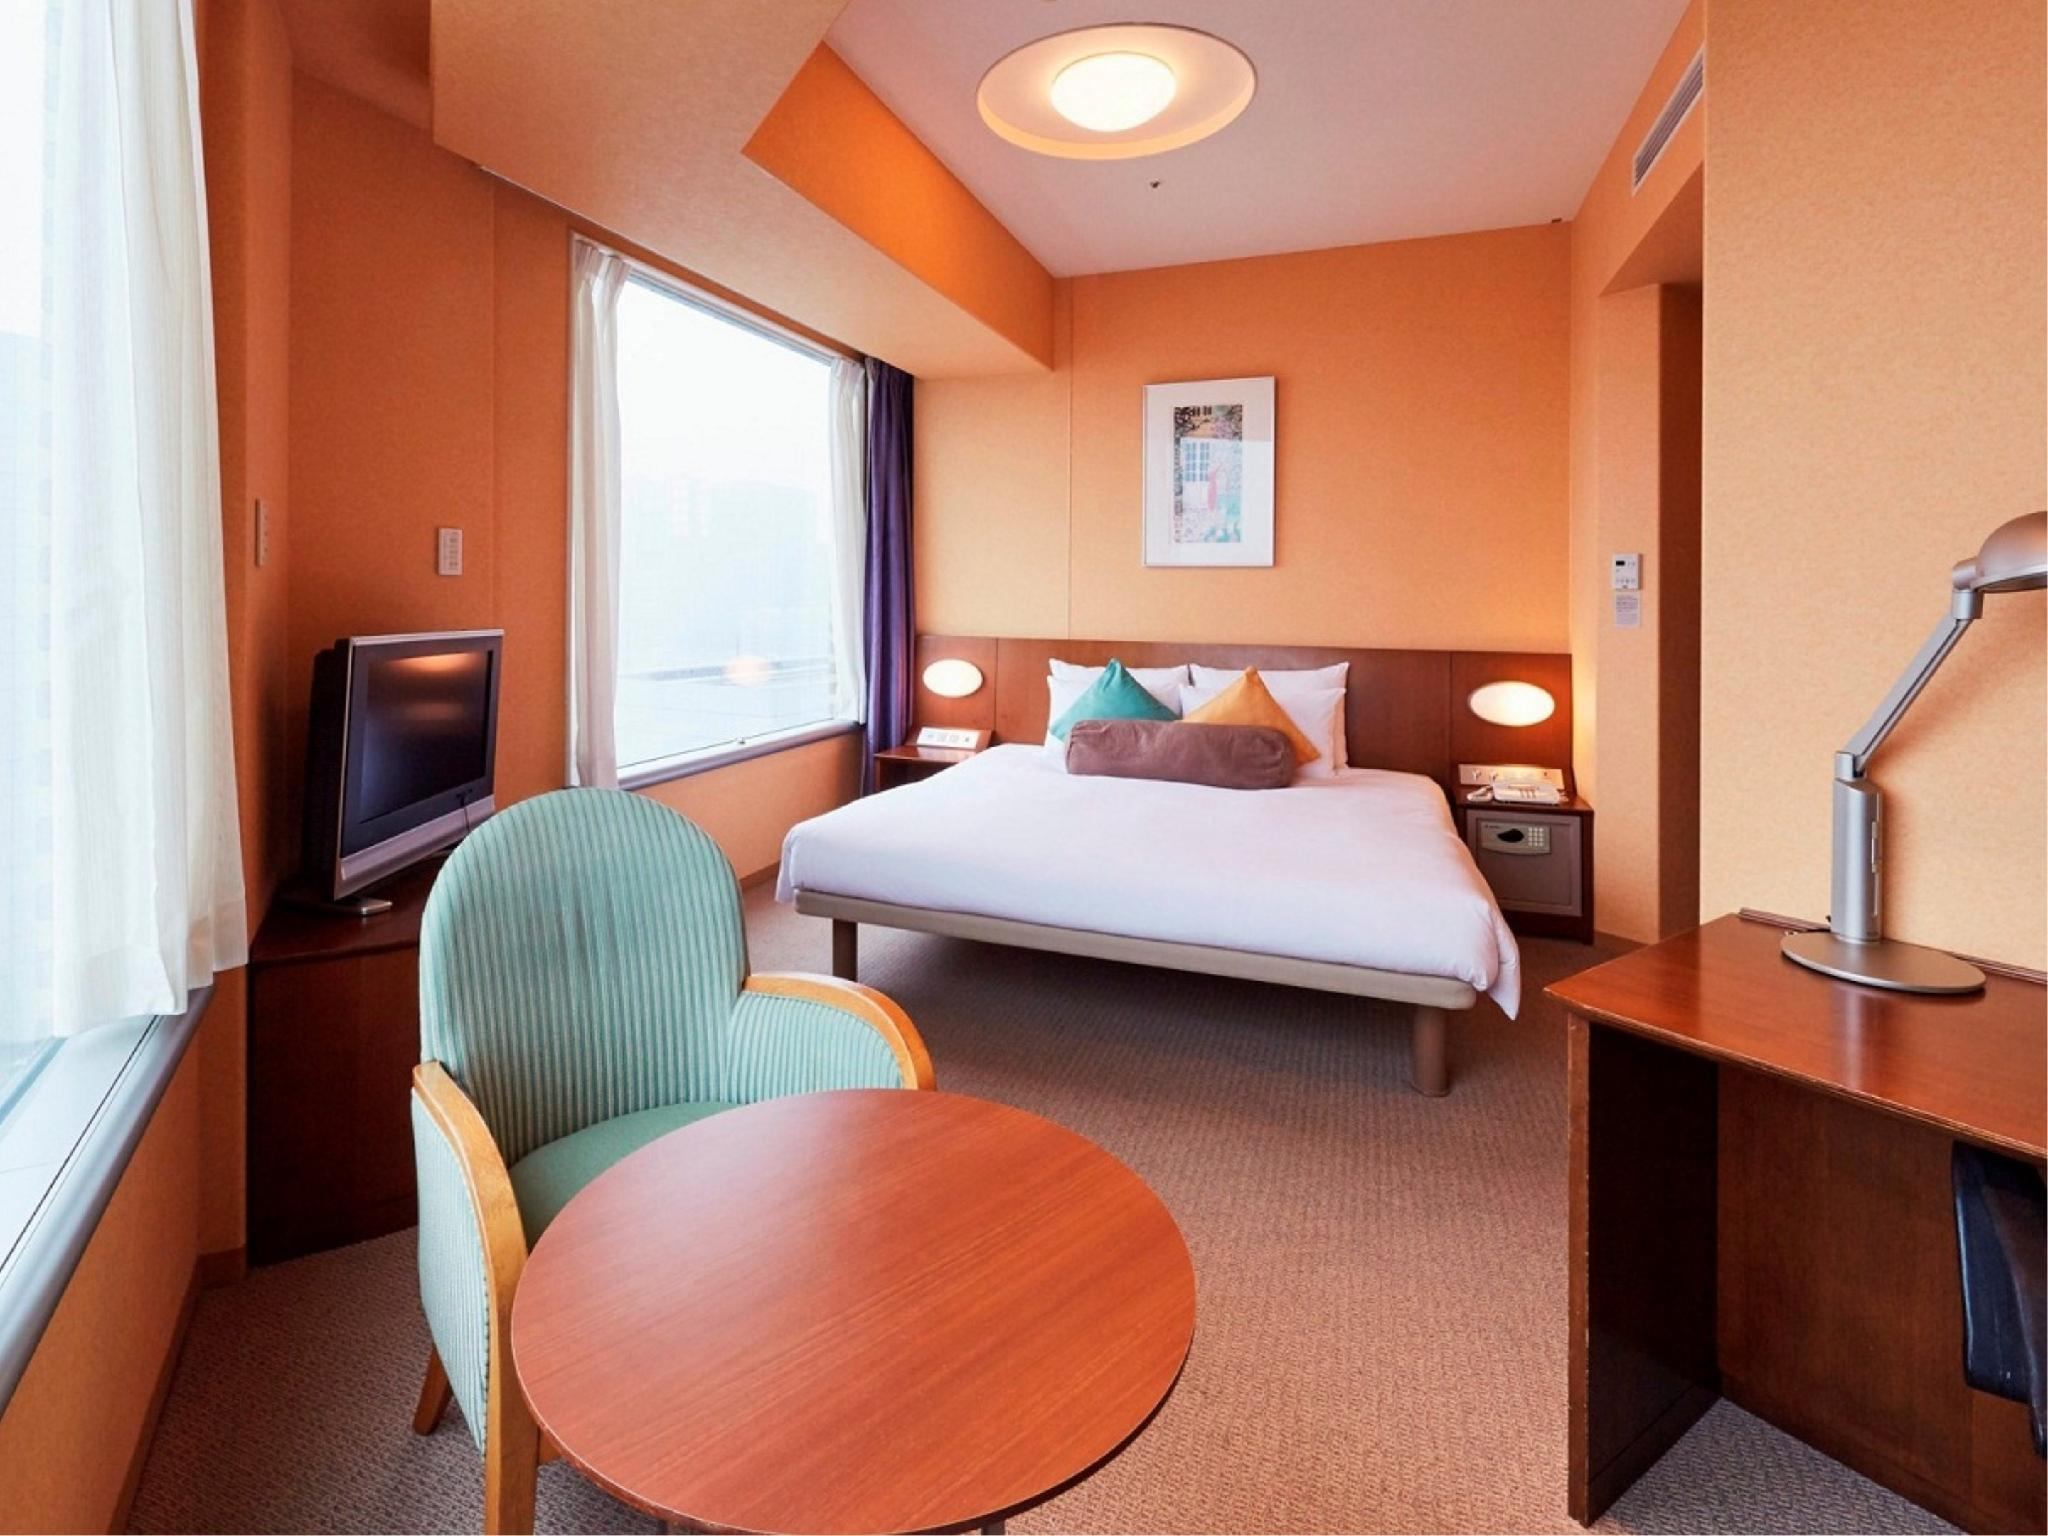 别馆塔楼 King床双人大床房 (King Double Room (Annex Tower))